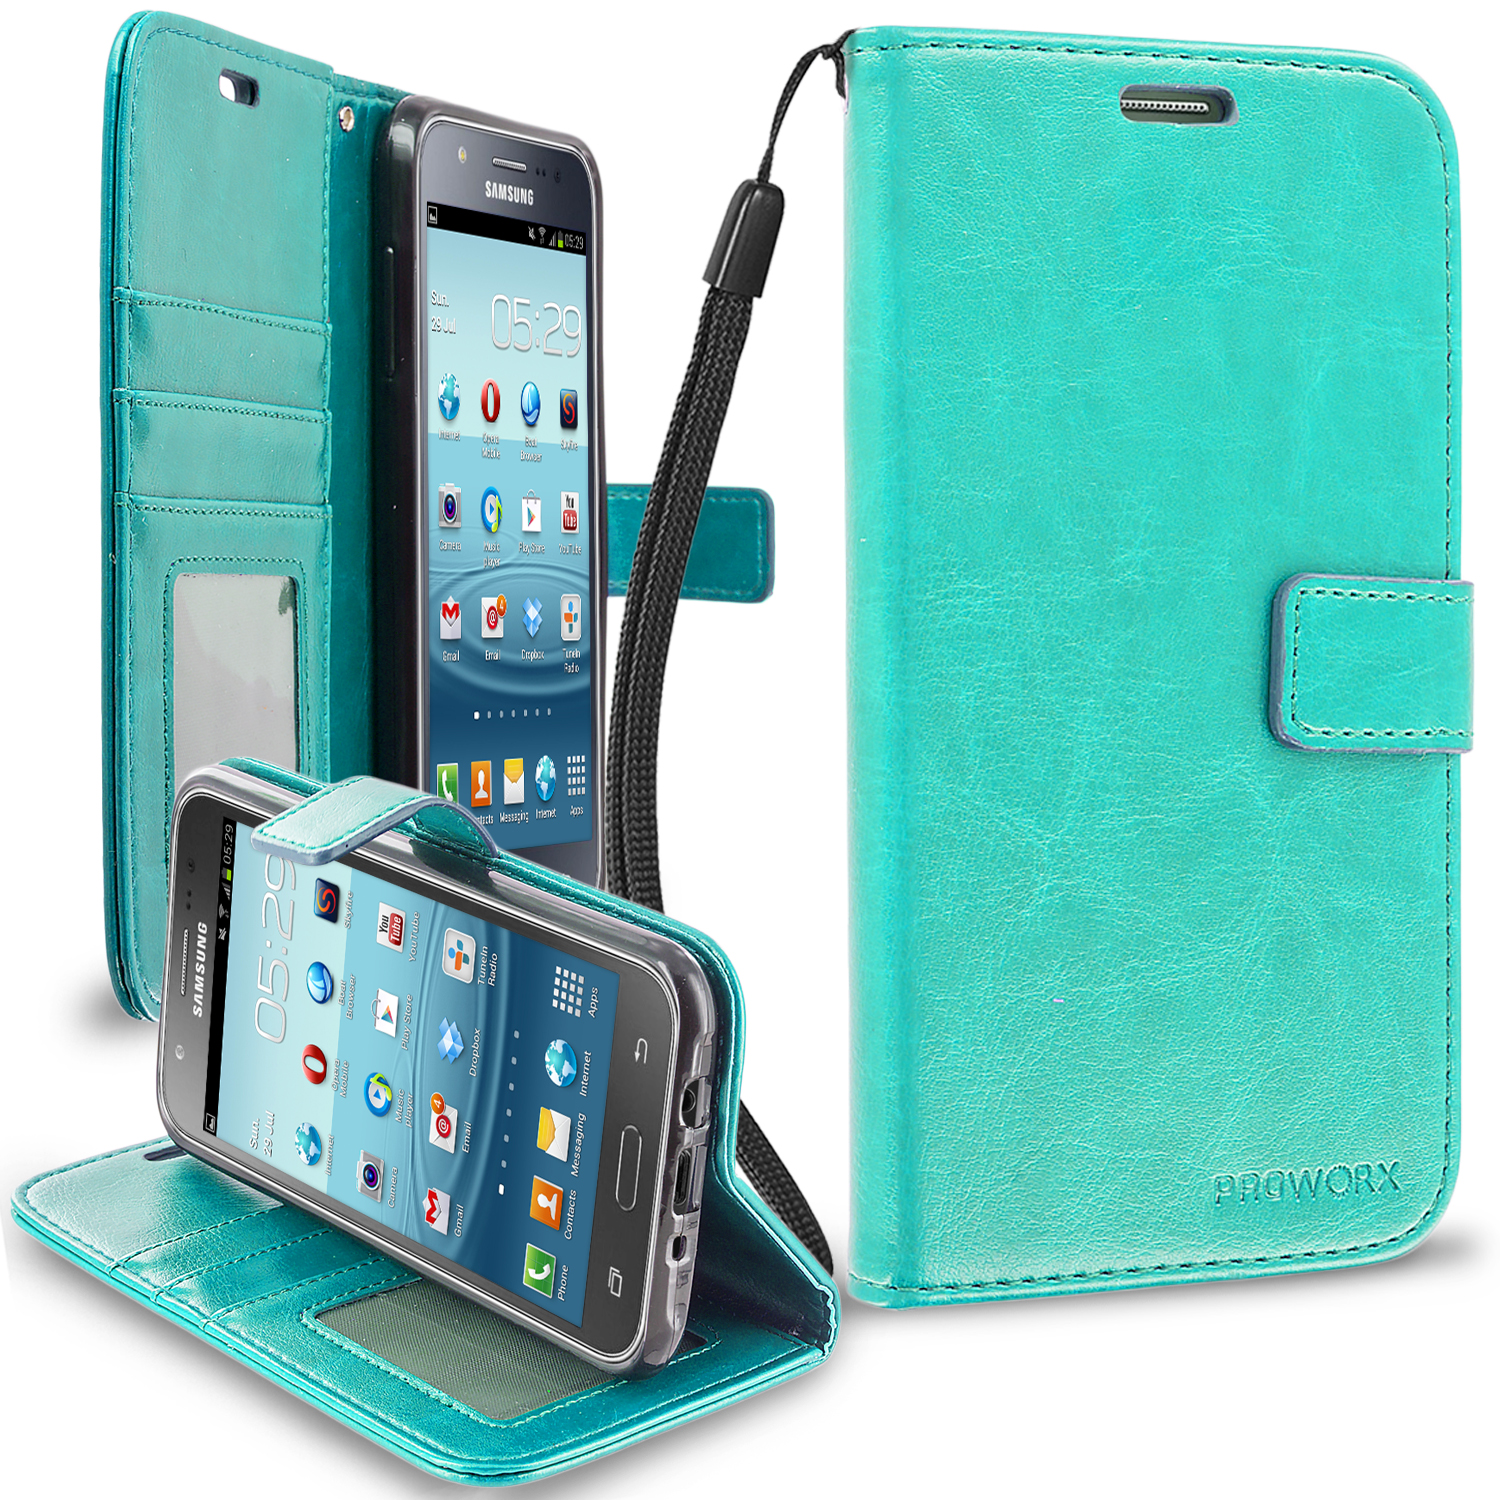 Samsung Galaxy J7 Mint Green ProWorx Wallet Case Luxury PU Leather Case Cover With Card Slots & Stand